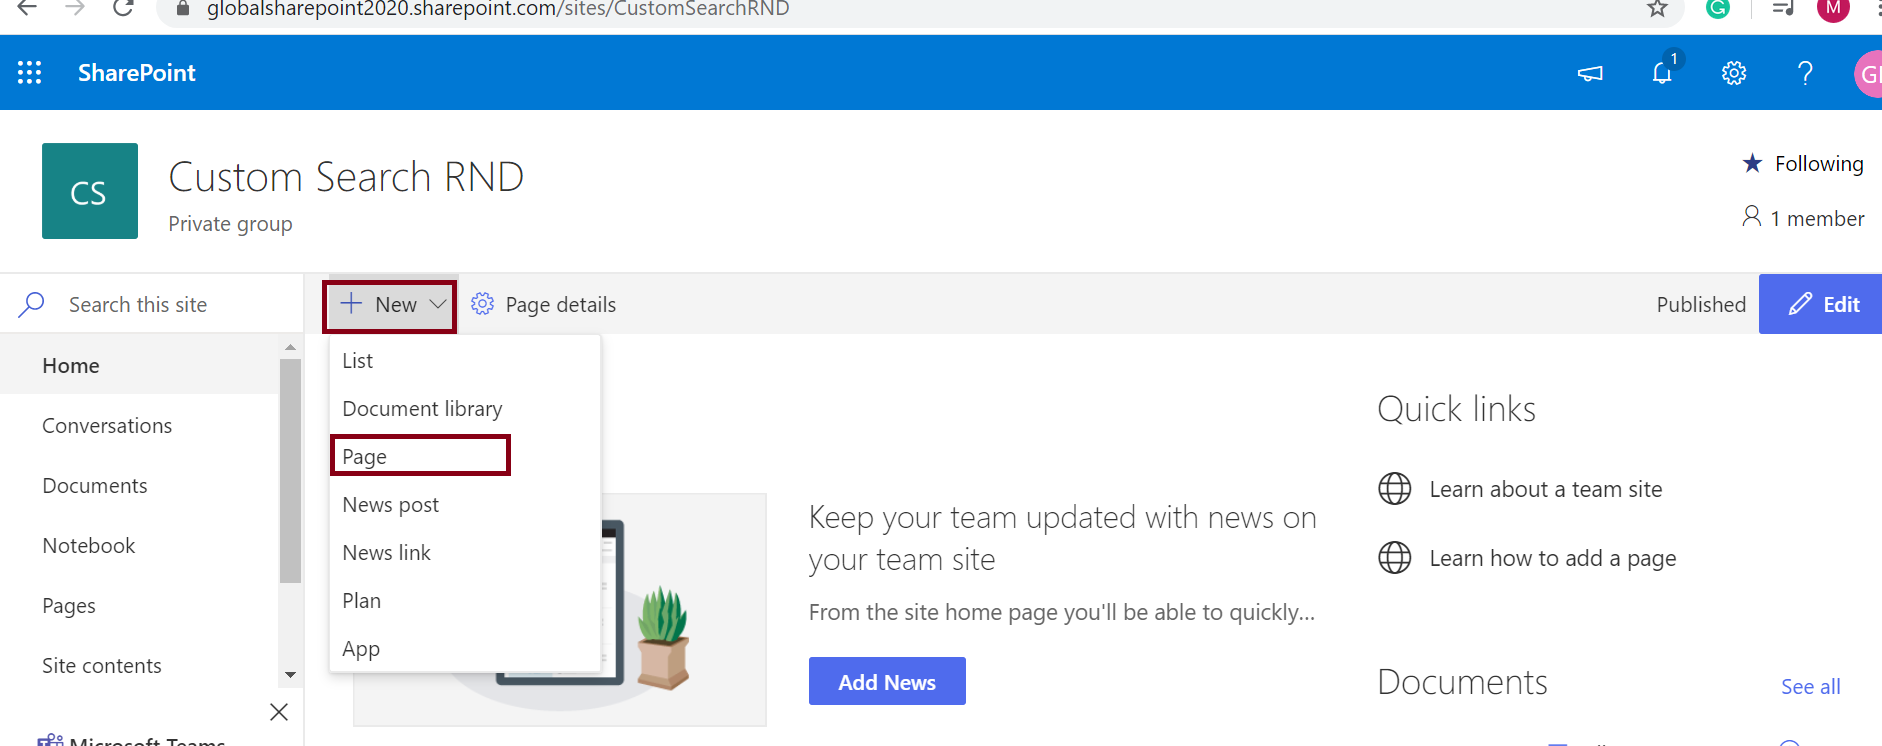 Steps to create a page in SharePoint Online - Click on the New button